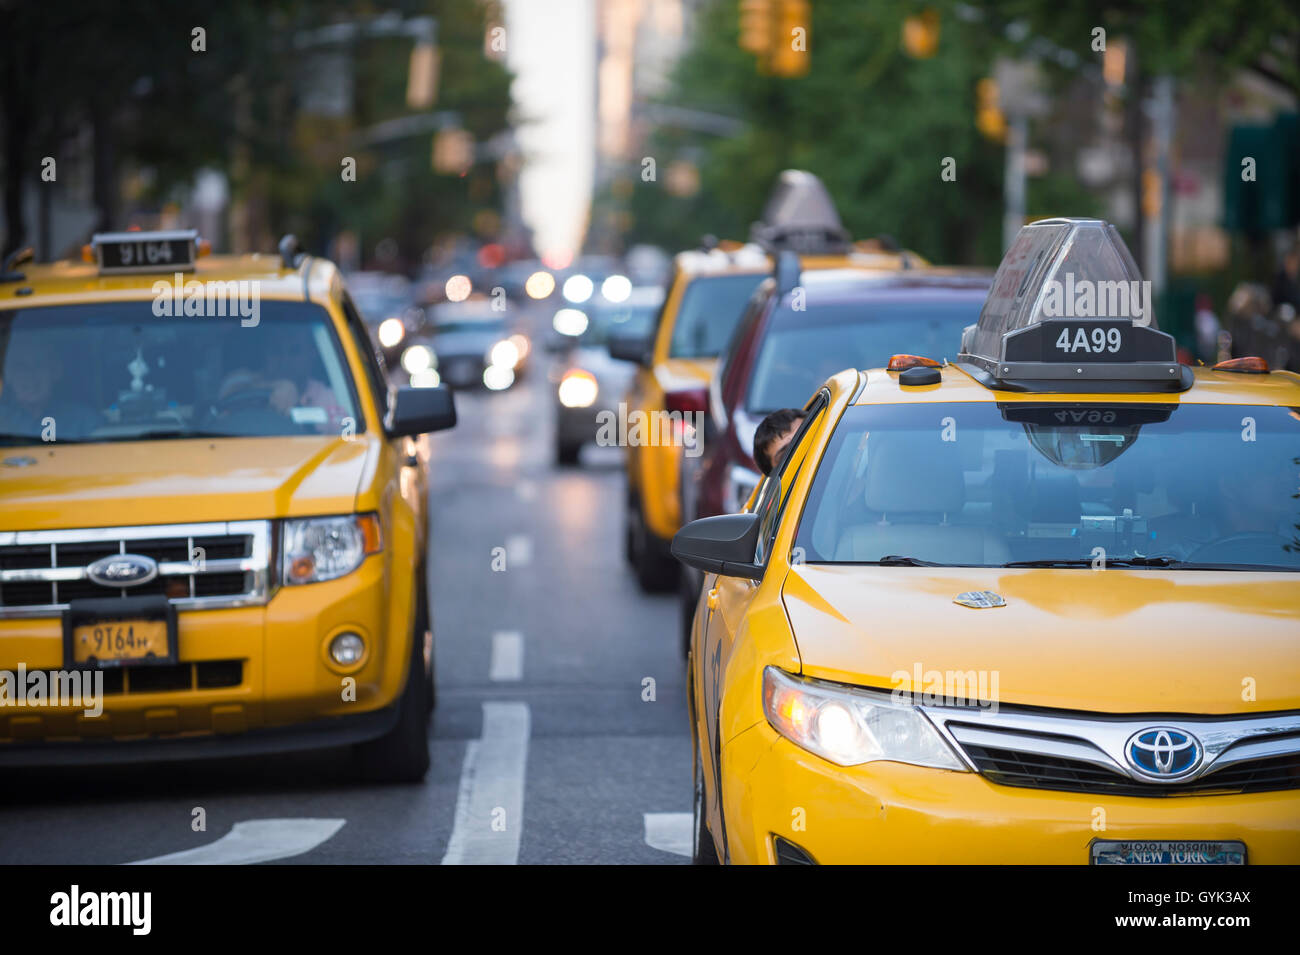 NEW YORK CITY - SEPTEMBER 4, 2016: Yellow taxis head downtown on a typical late afternoon scene on lower Fifth Avenue. - Stock Image